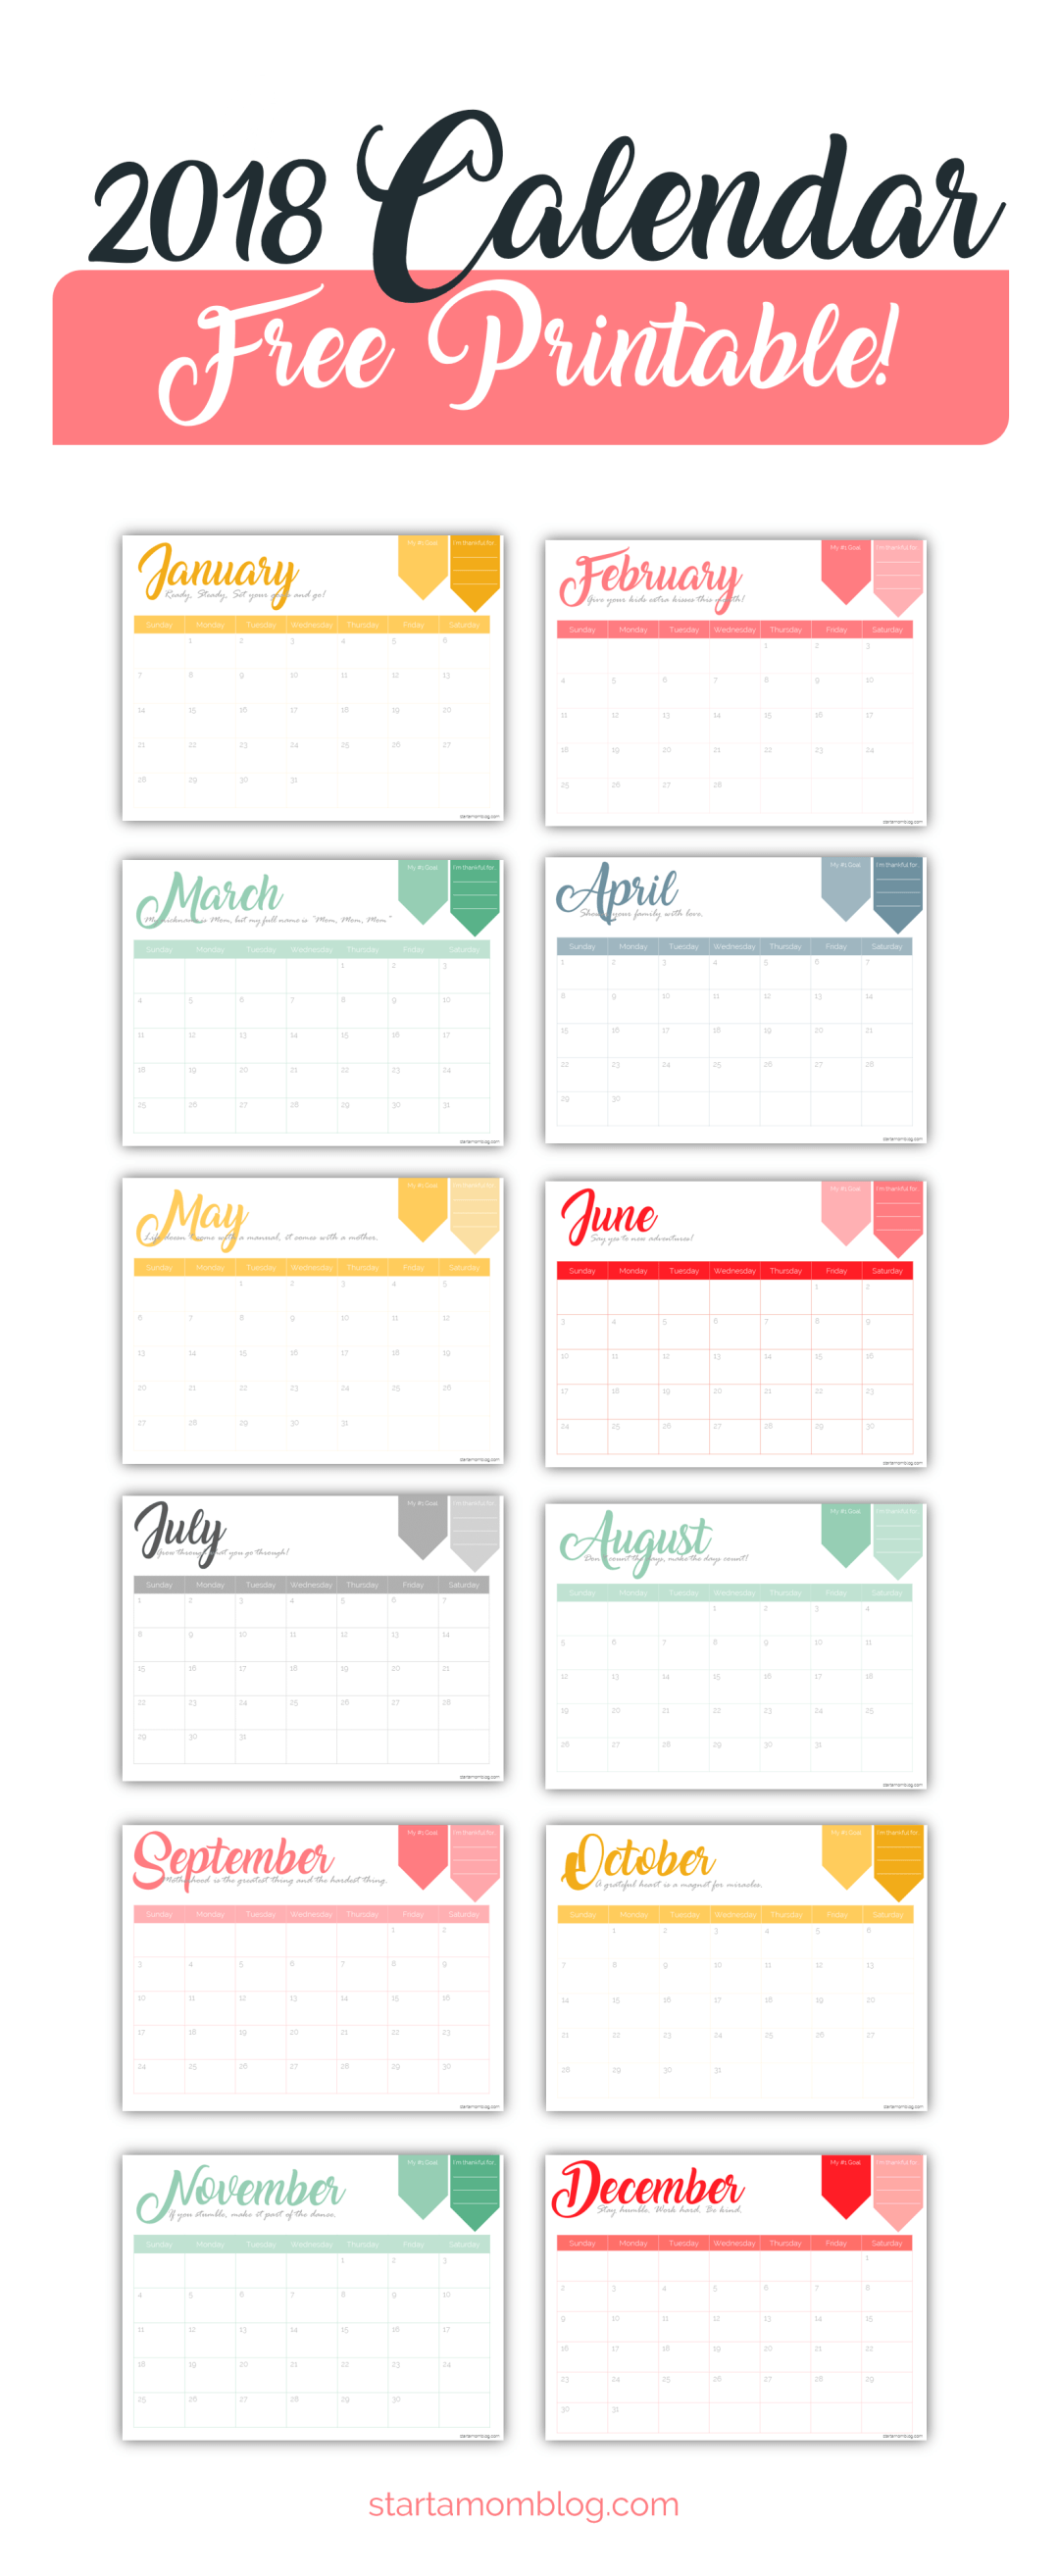 Free Calendar Printable With Inspirational Quotes For